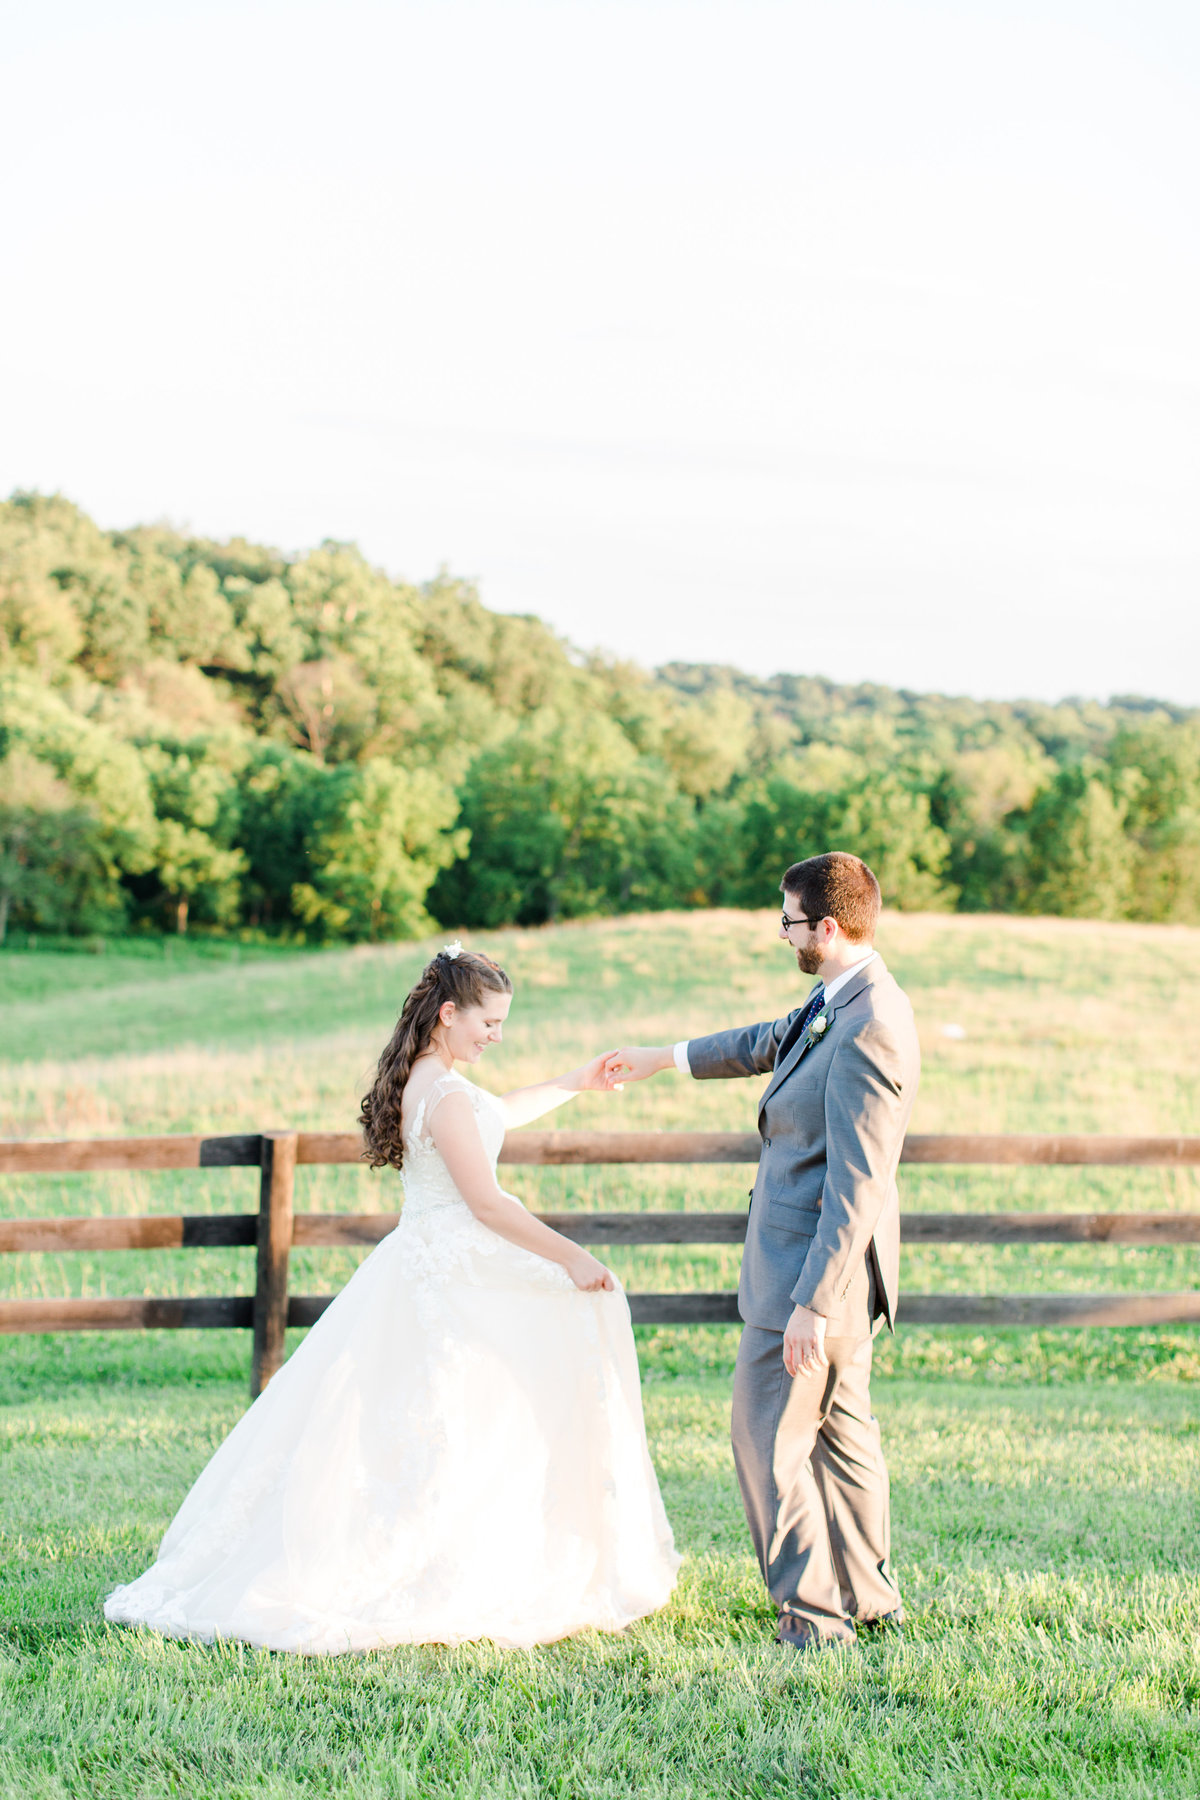 shadow-creek-wedding-purcellville-va-weiser-bride-groom-portraits-bethanne-arthur-photography-photos-123